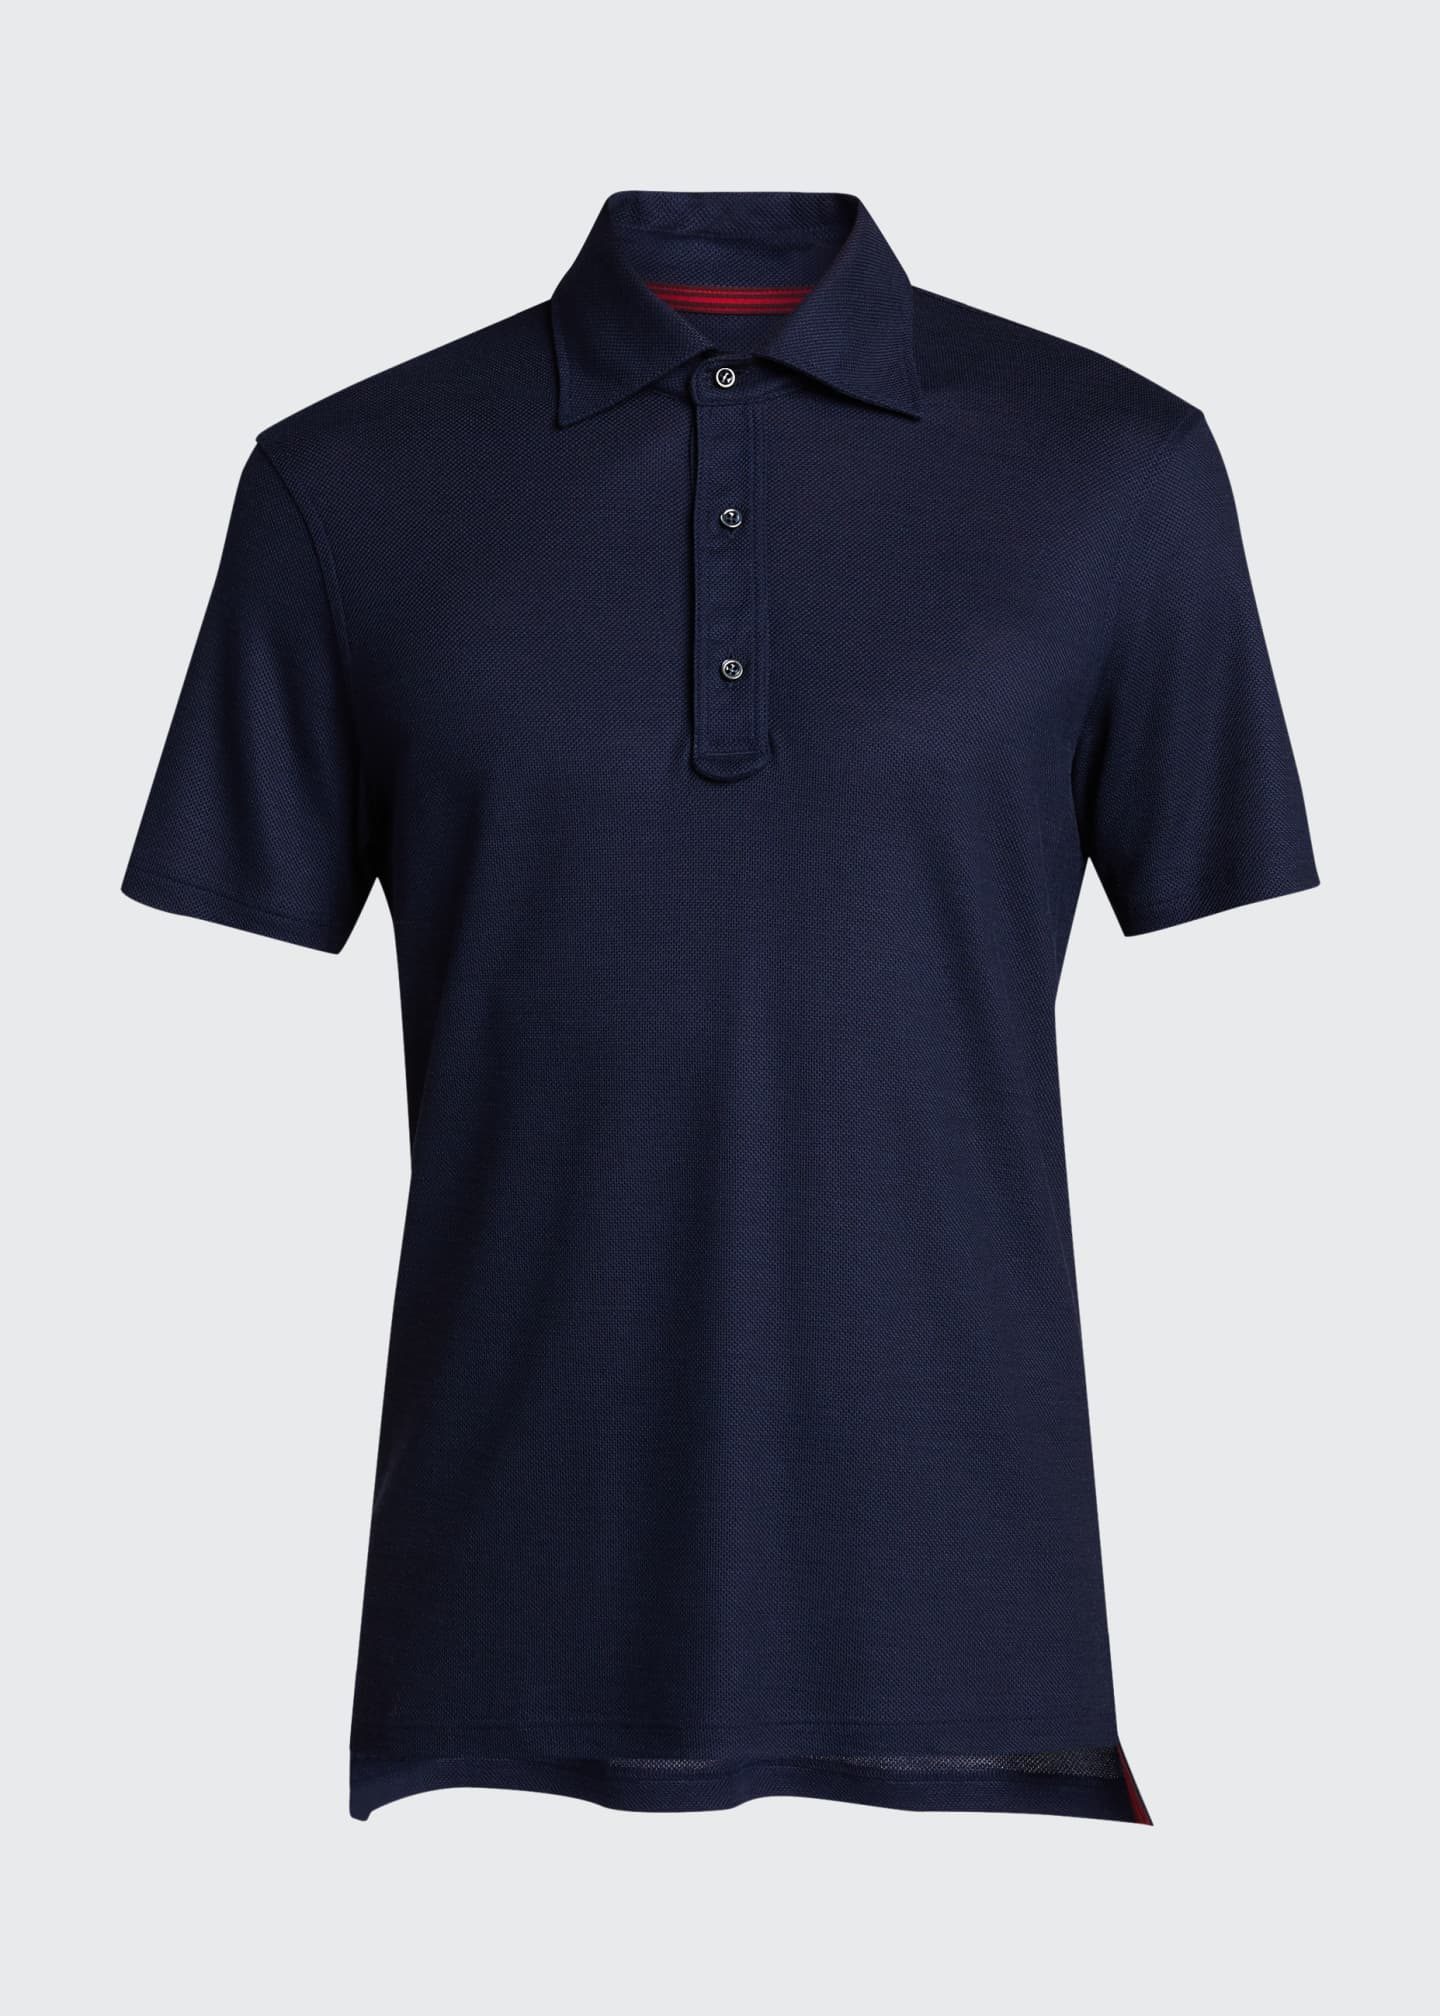 Image 5 of 5: Men's Grand Pique Wool Polo Shirt